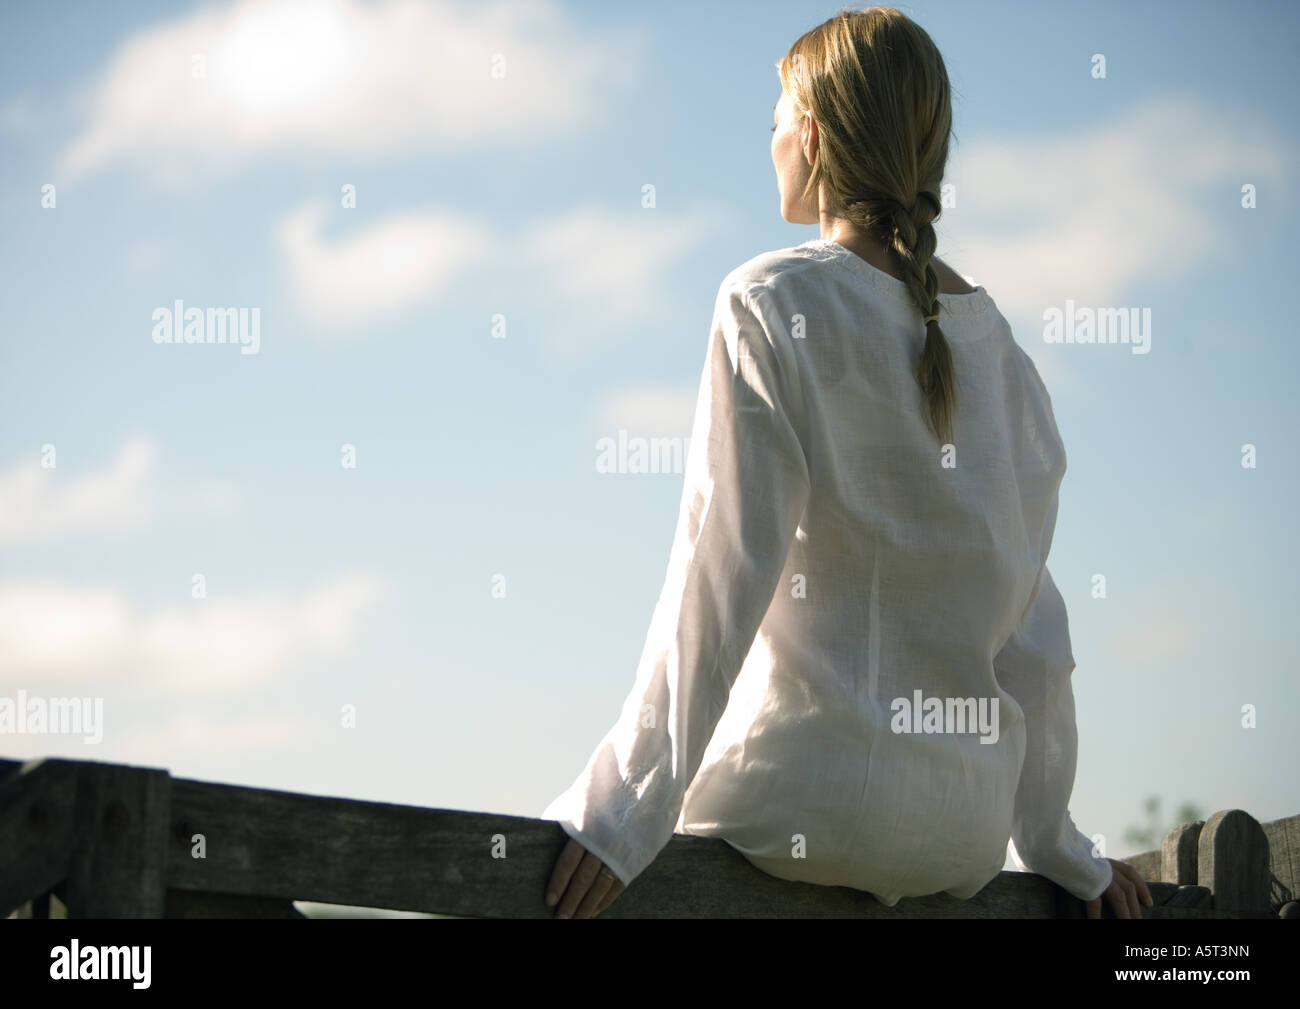 Woman sitting on wooden rail, facing sky - Stock Image